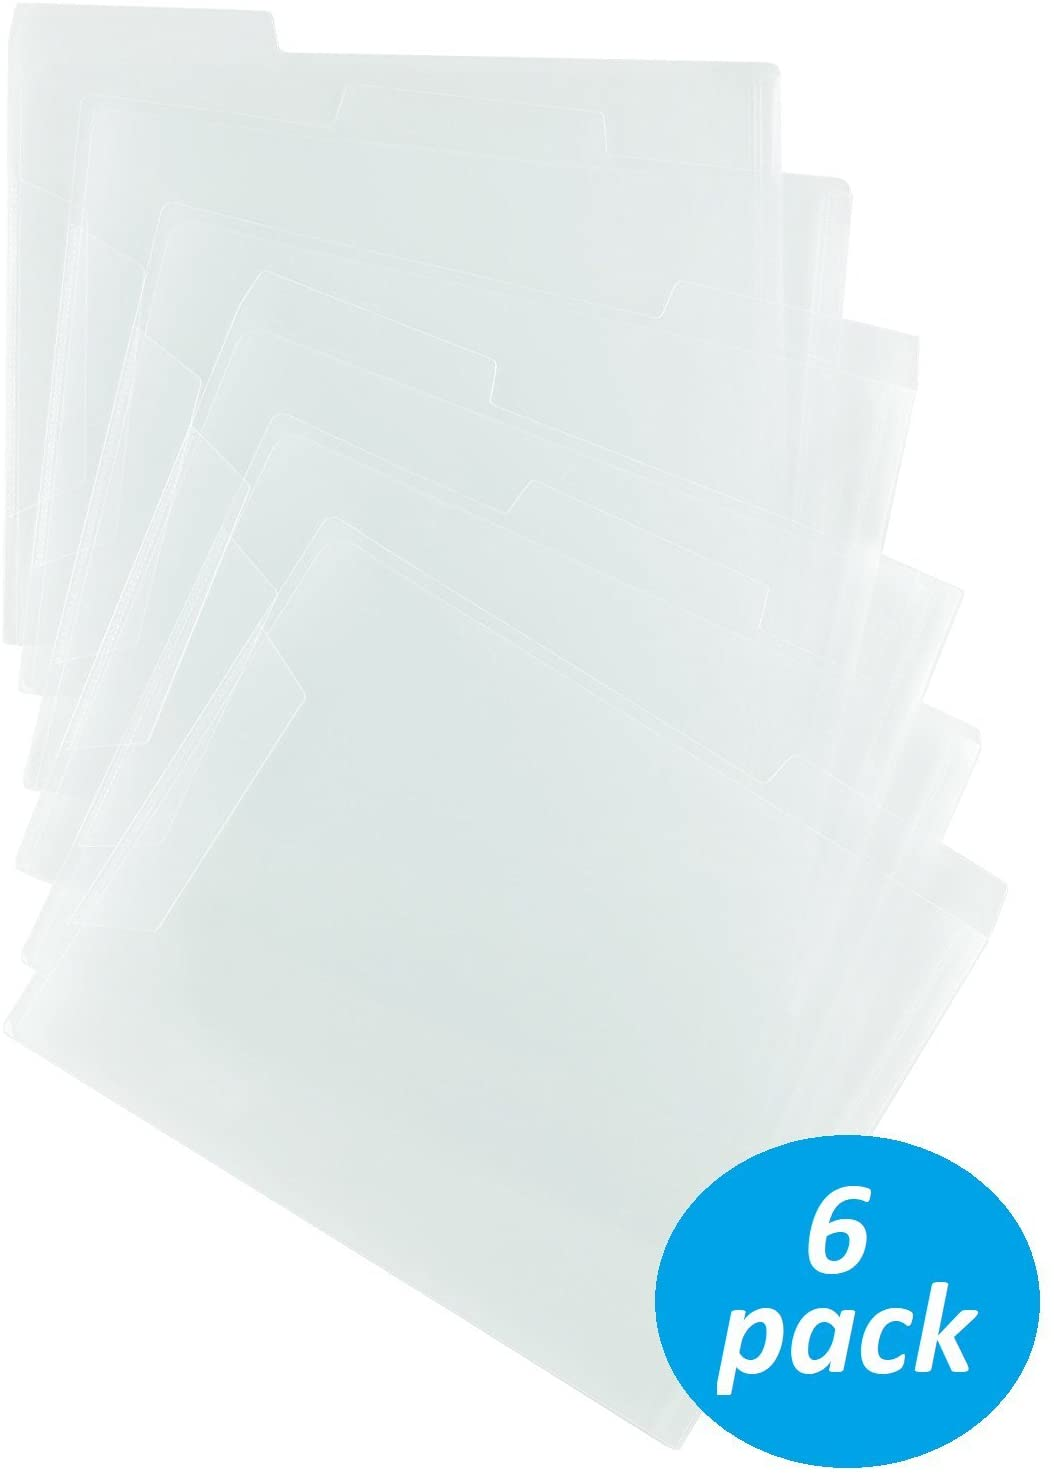 1InTheOffice Translucent Poly File Folders, Clear, 6 Pack